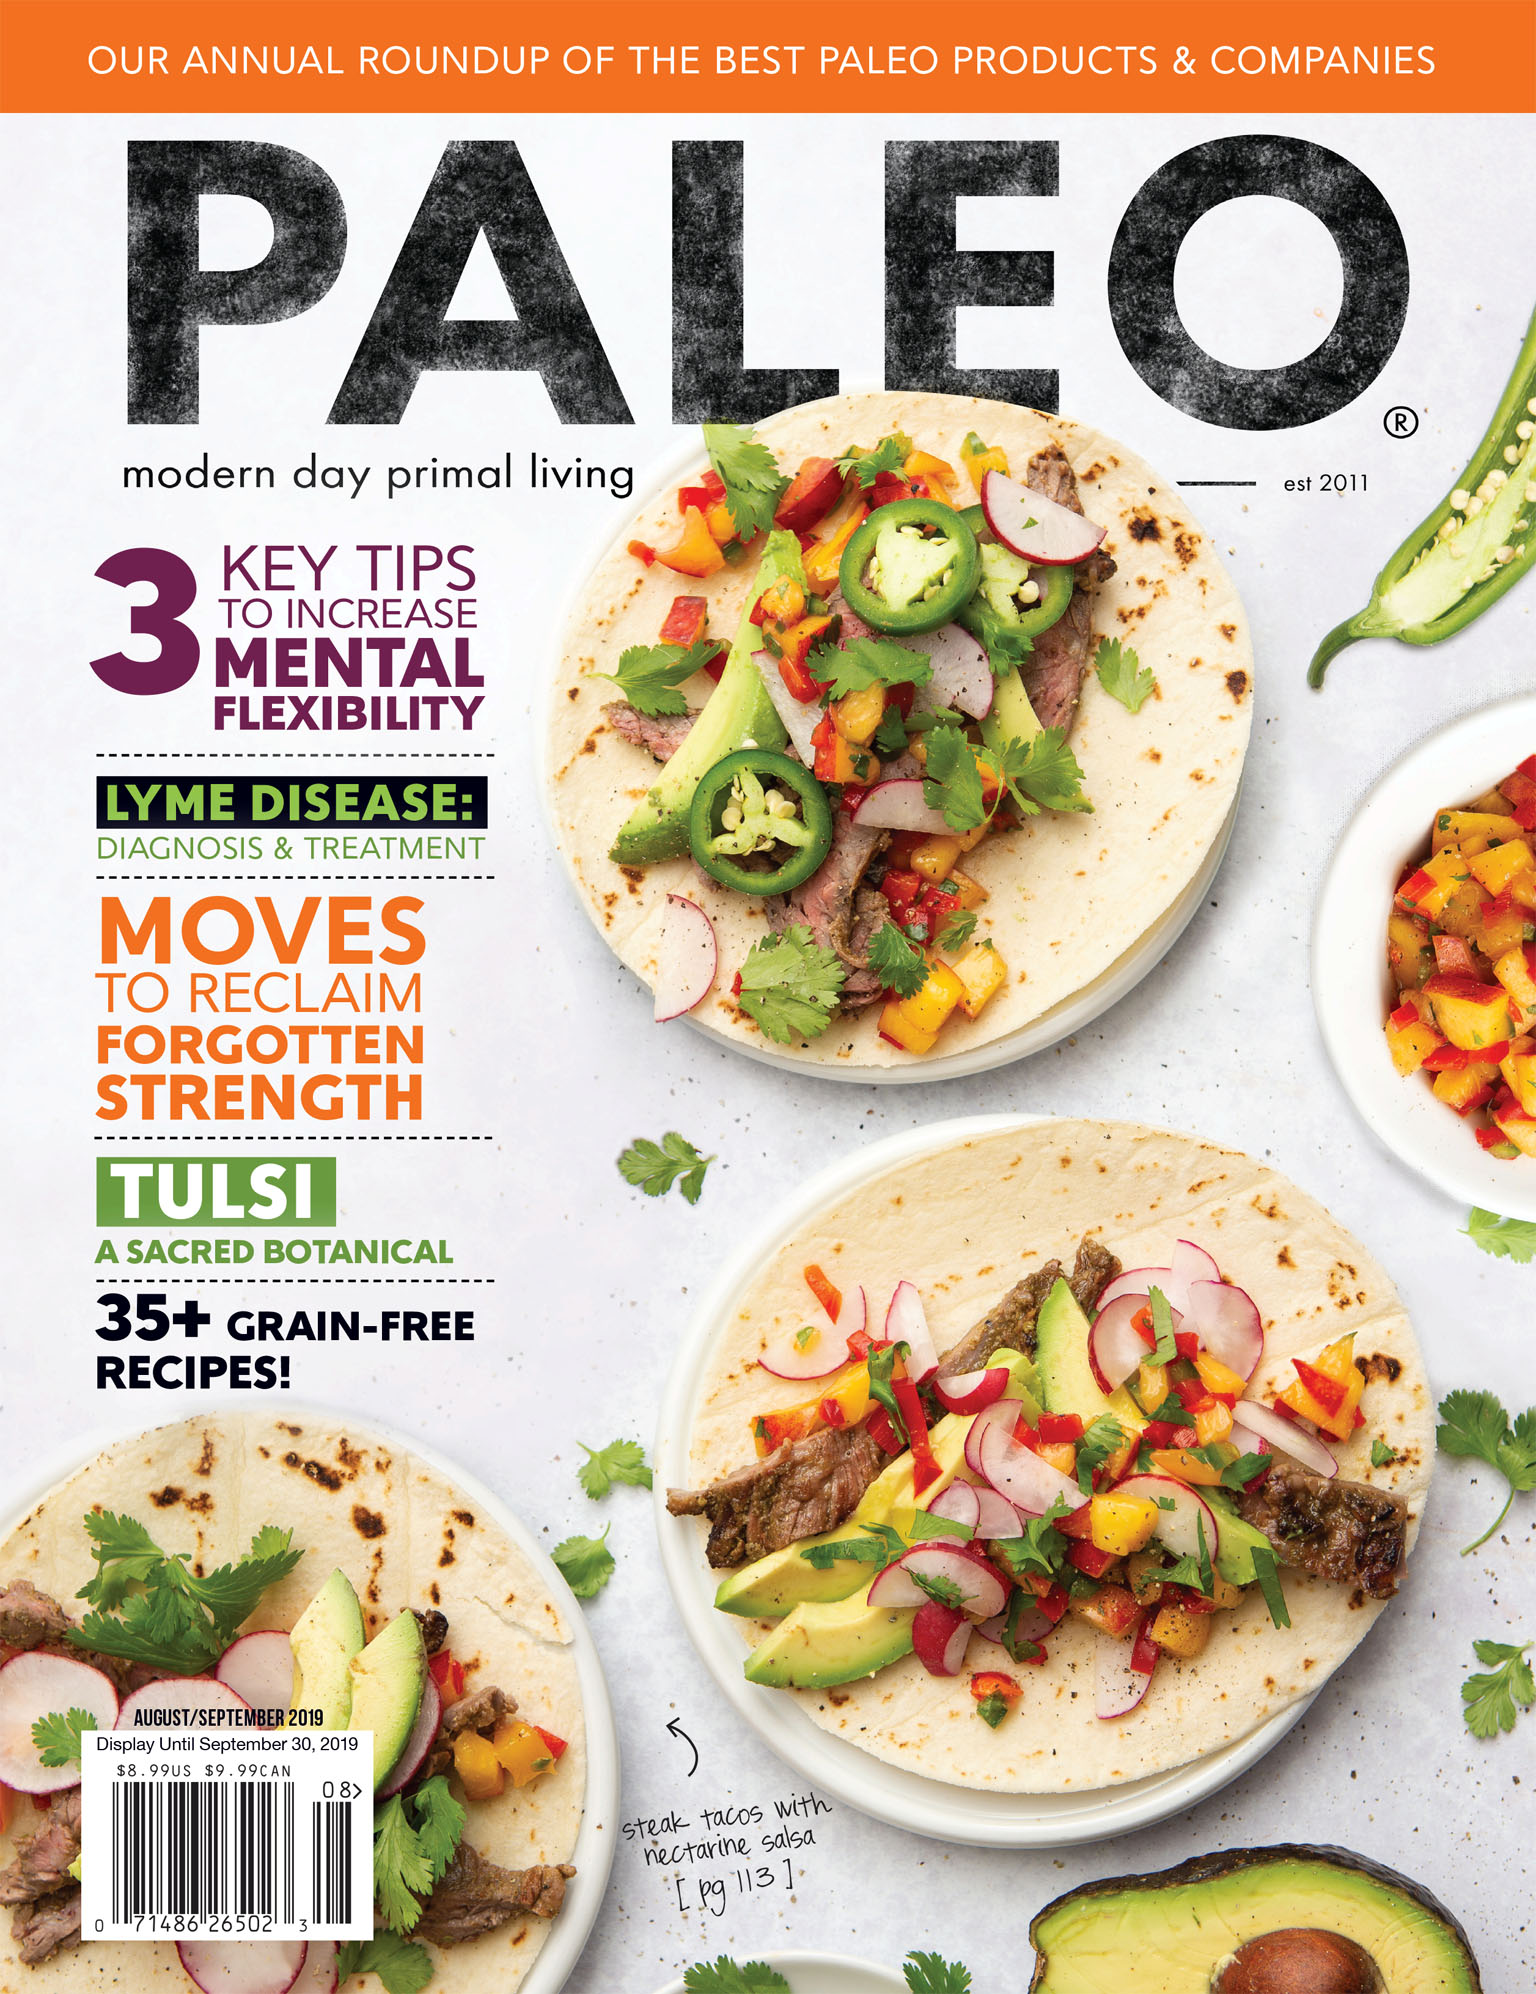 Cover photo for Paleo Magazine - Steak Taco Food Photography